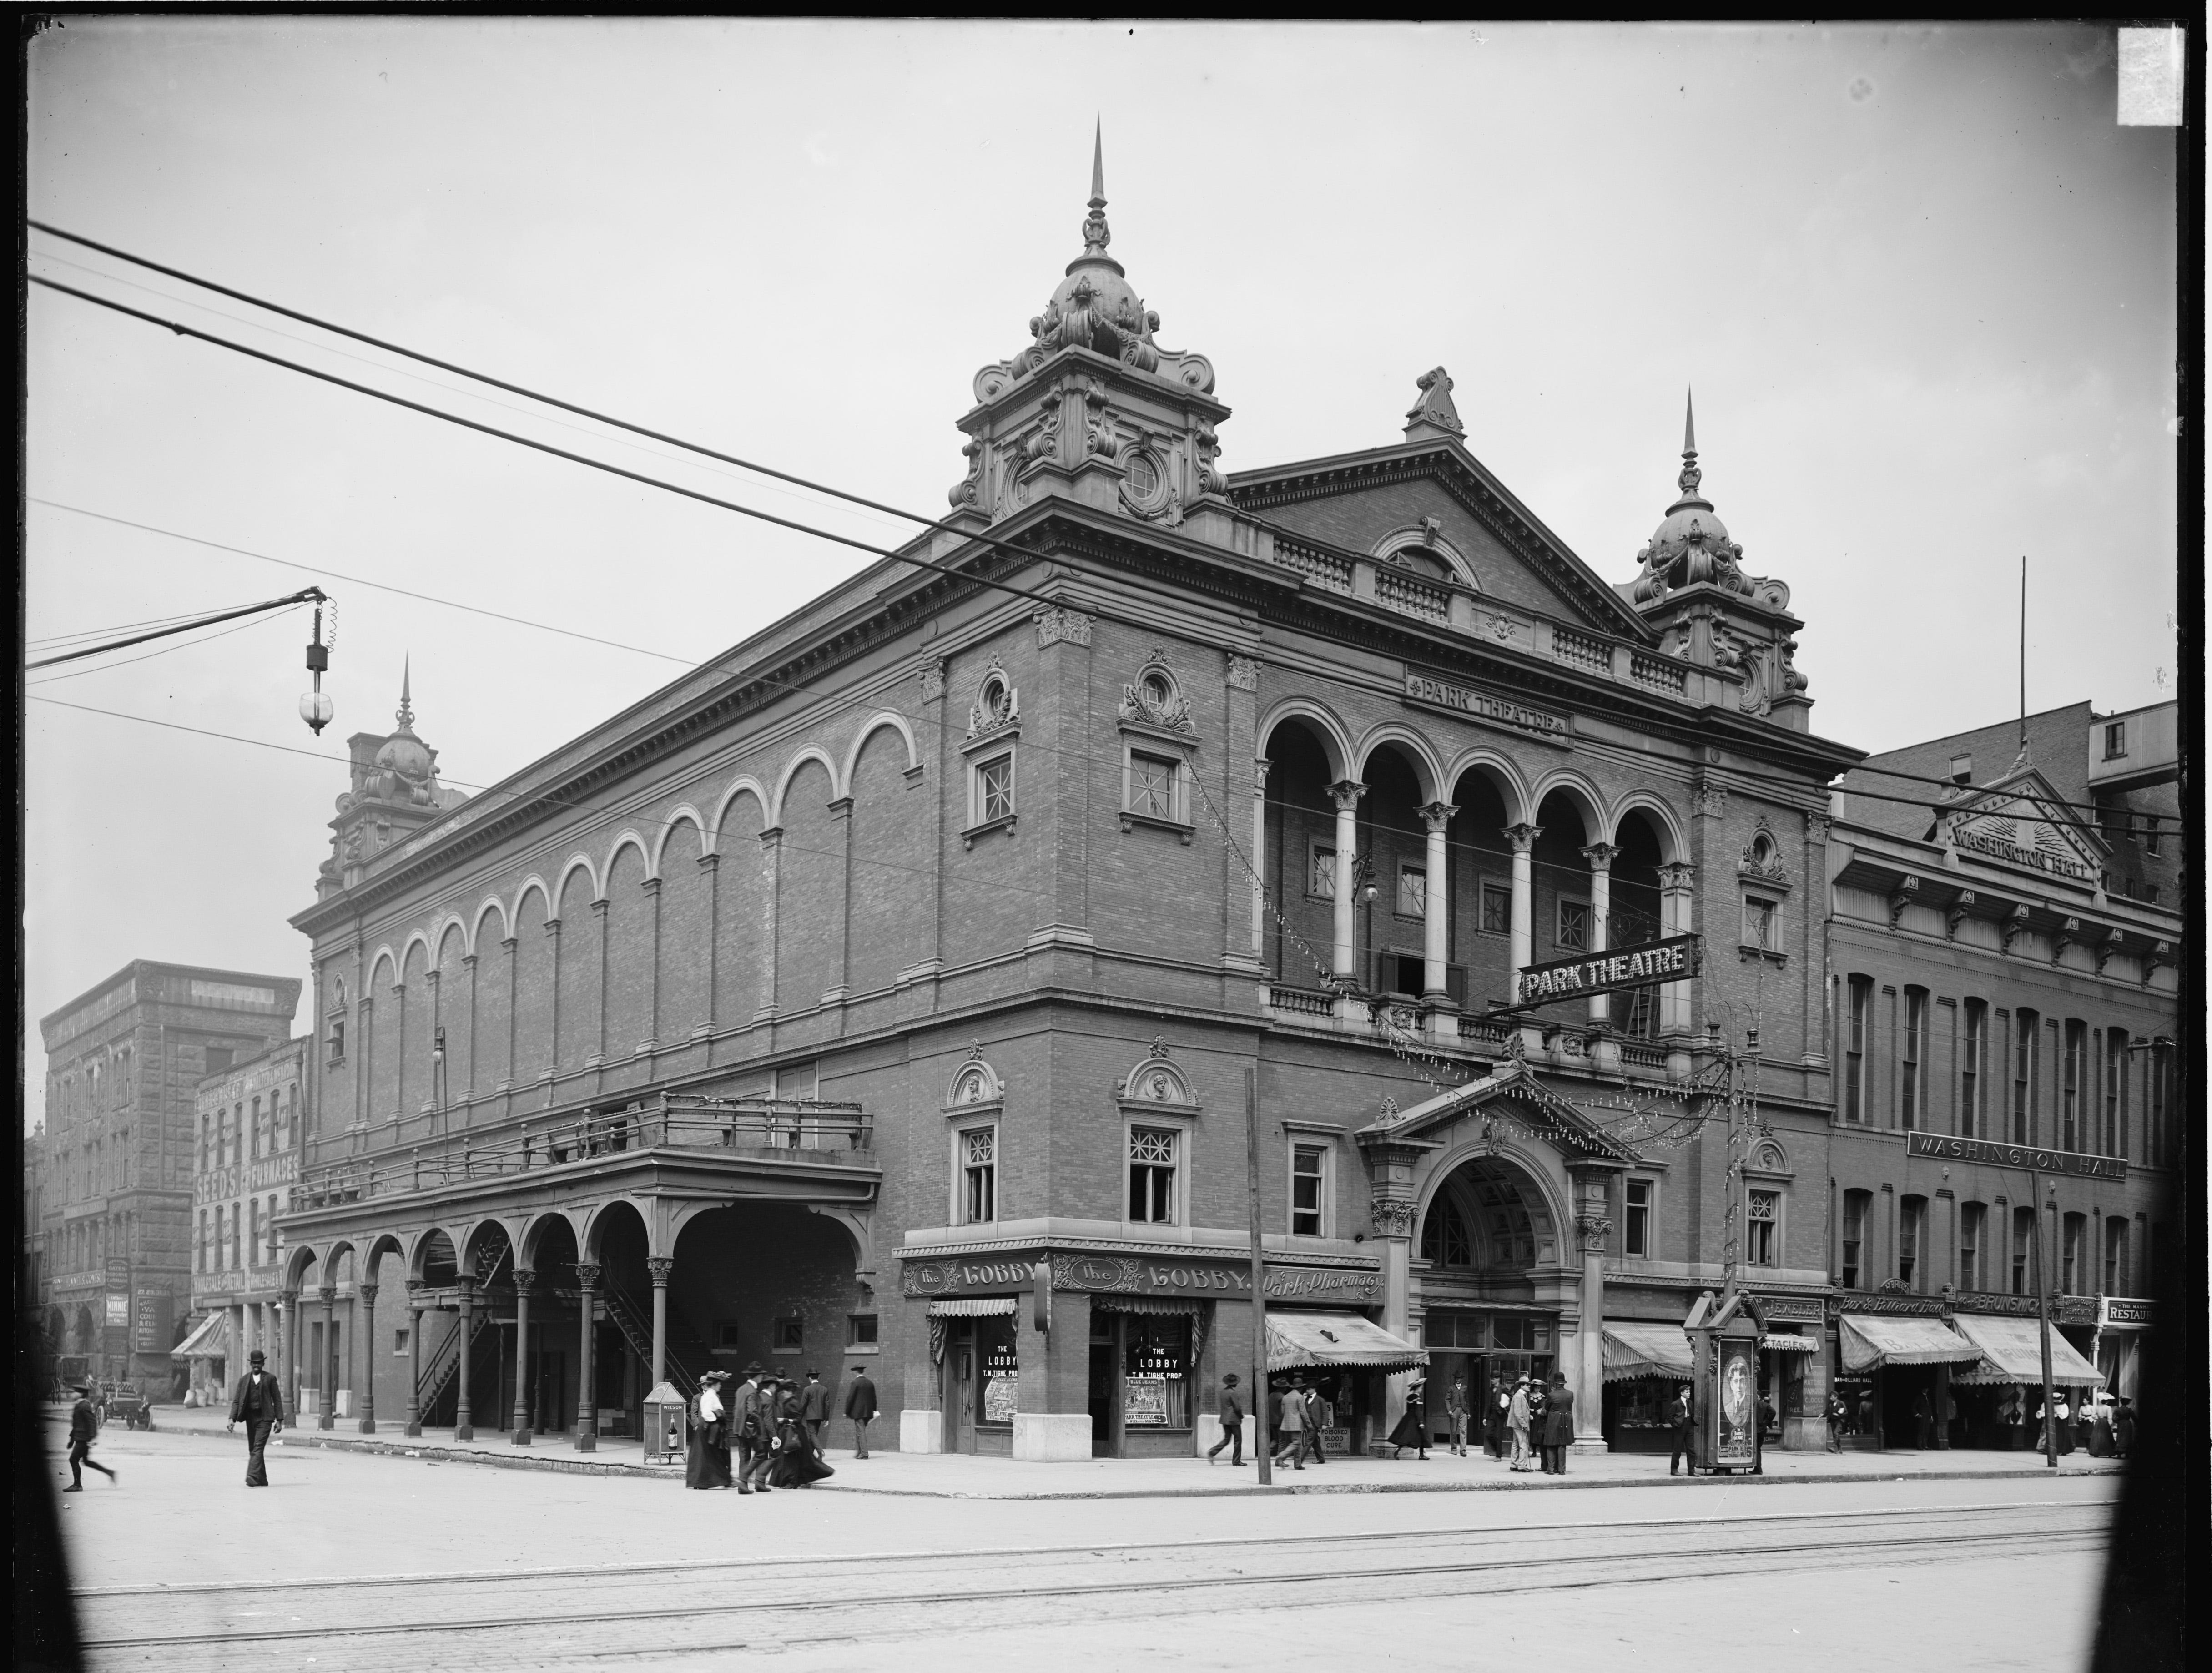 The Park Theater on Washington and Capitol was the city's first building constructed as a theater (named the Metropolitan in 1858). In 1882 it became the Park Theatre, then the Lyceum in 1913, the Strand in 1916 and the Park again late in 1916.